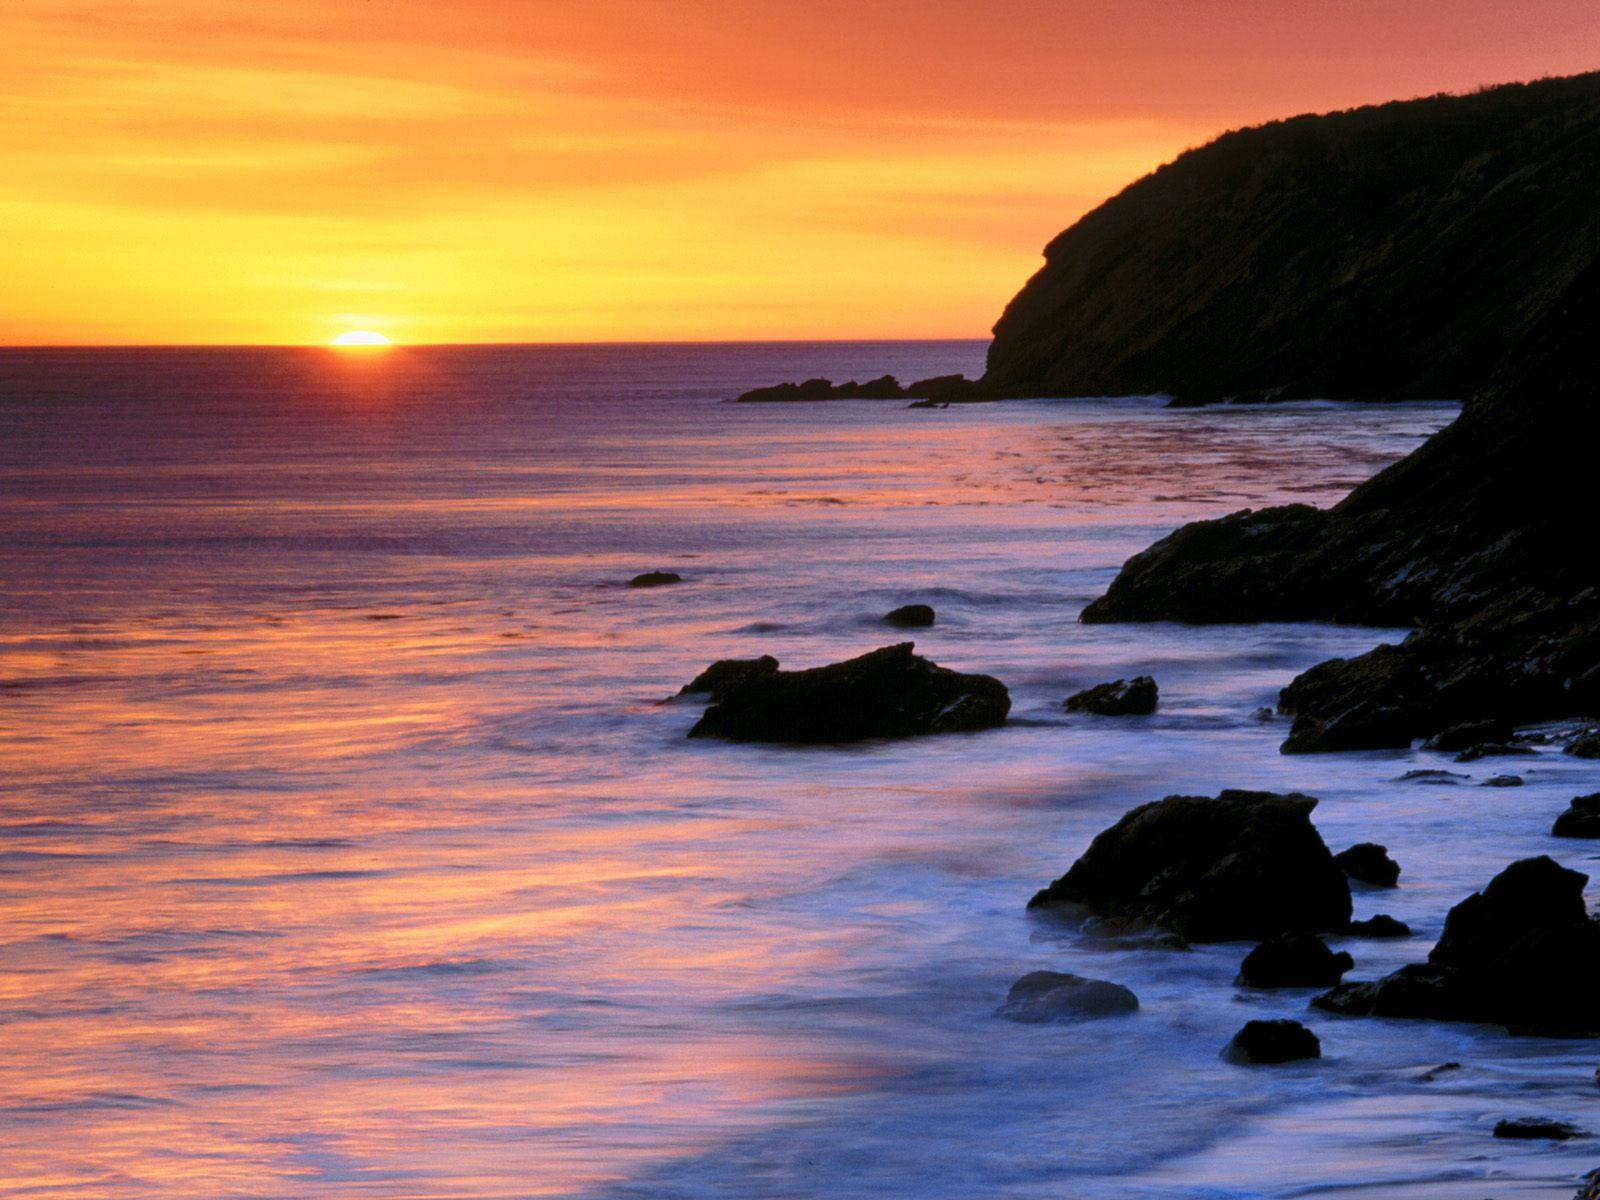 Pacific ocean sunset landscape